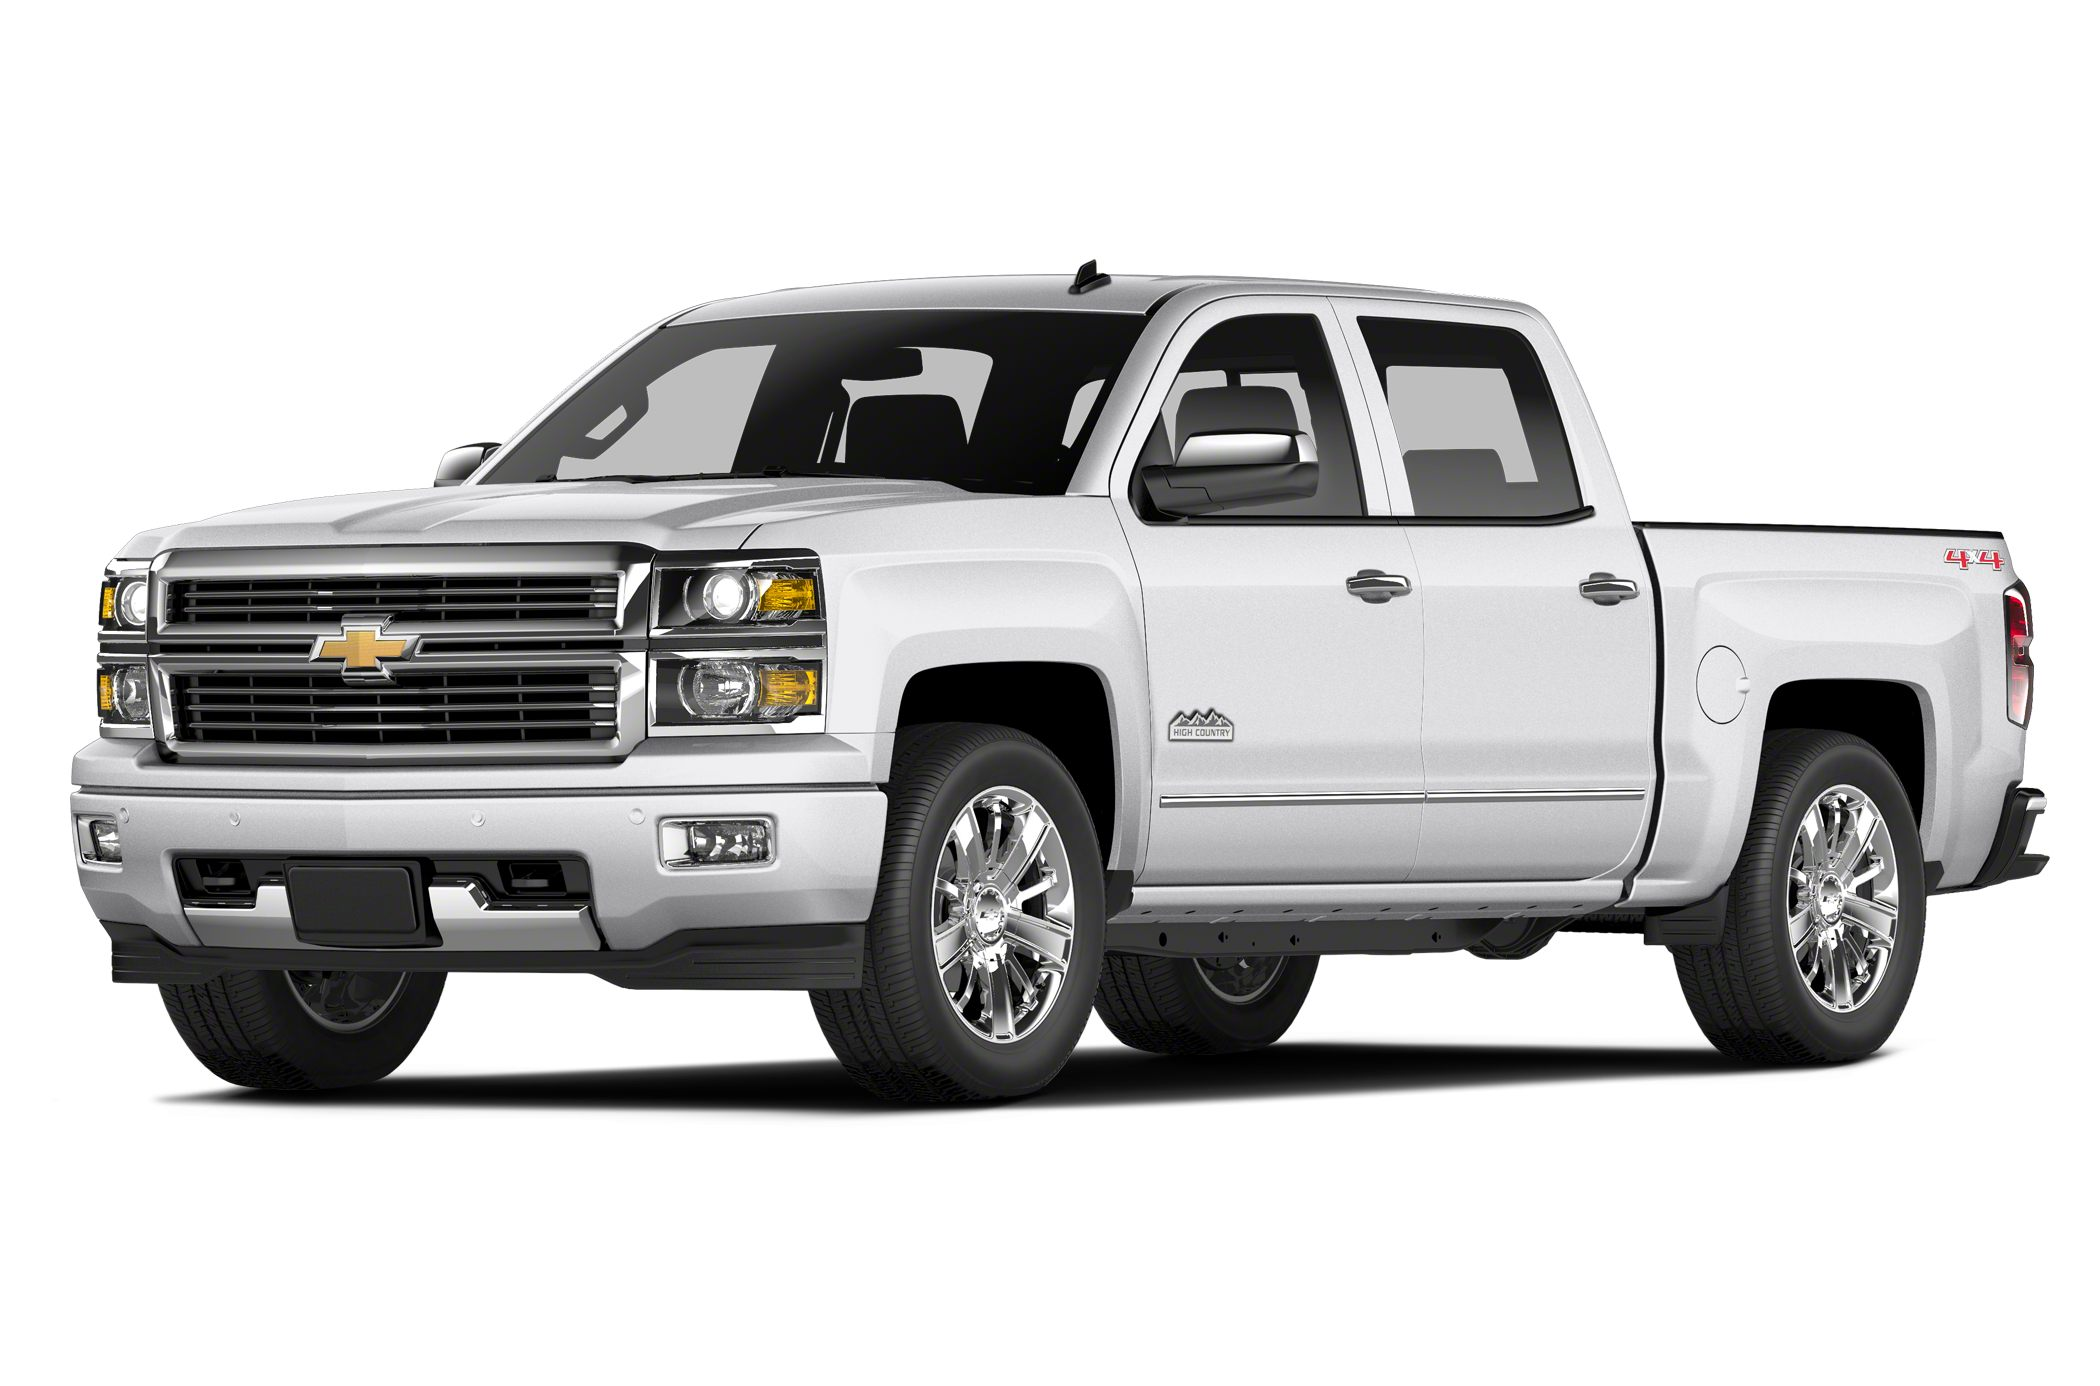 2015 Chevrolet Silverado 2500hd High Country 4x4 Crew Cab 6 6 Ft Box 153 7 In Wb Specs And Prices